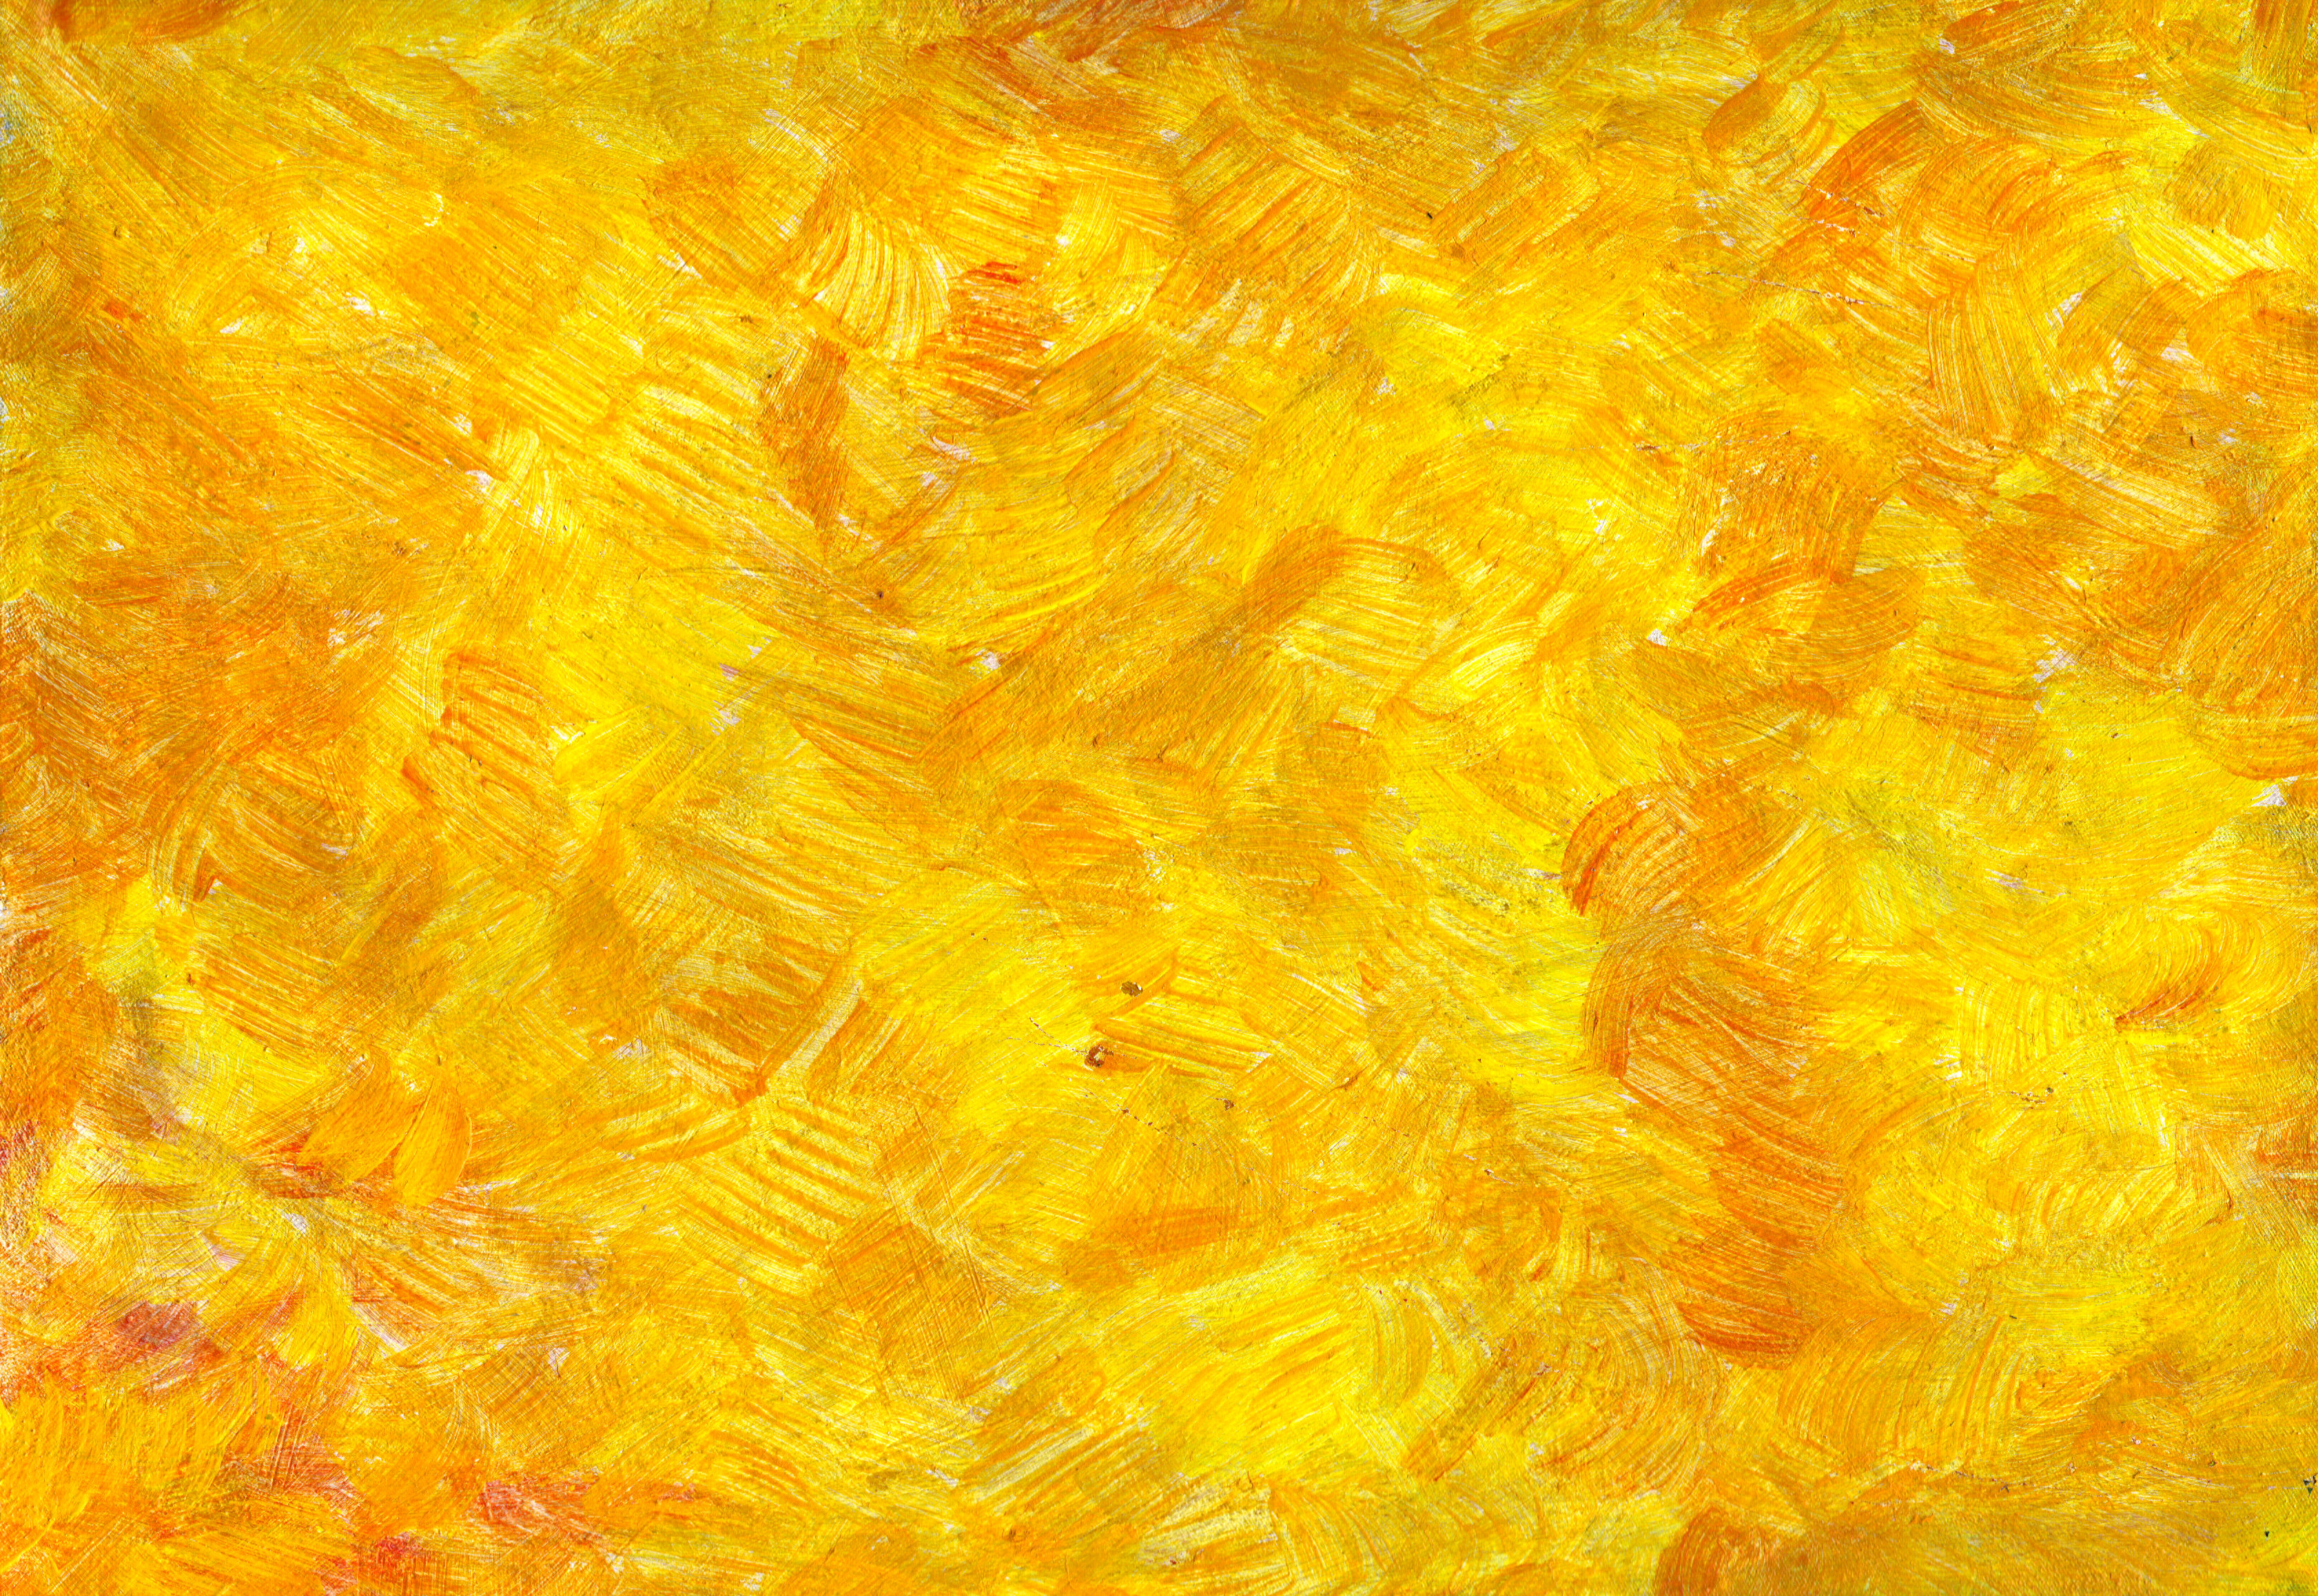 Yellow orange paint texture jpg for Texture paint images